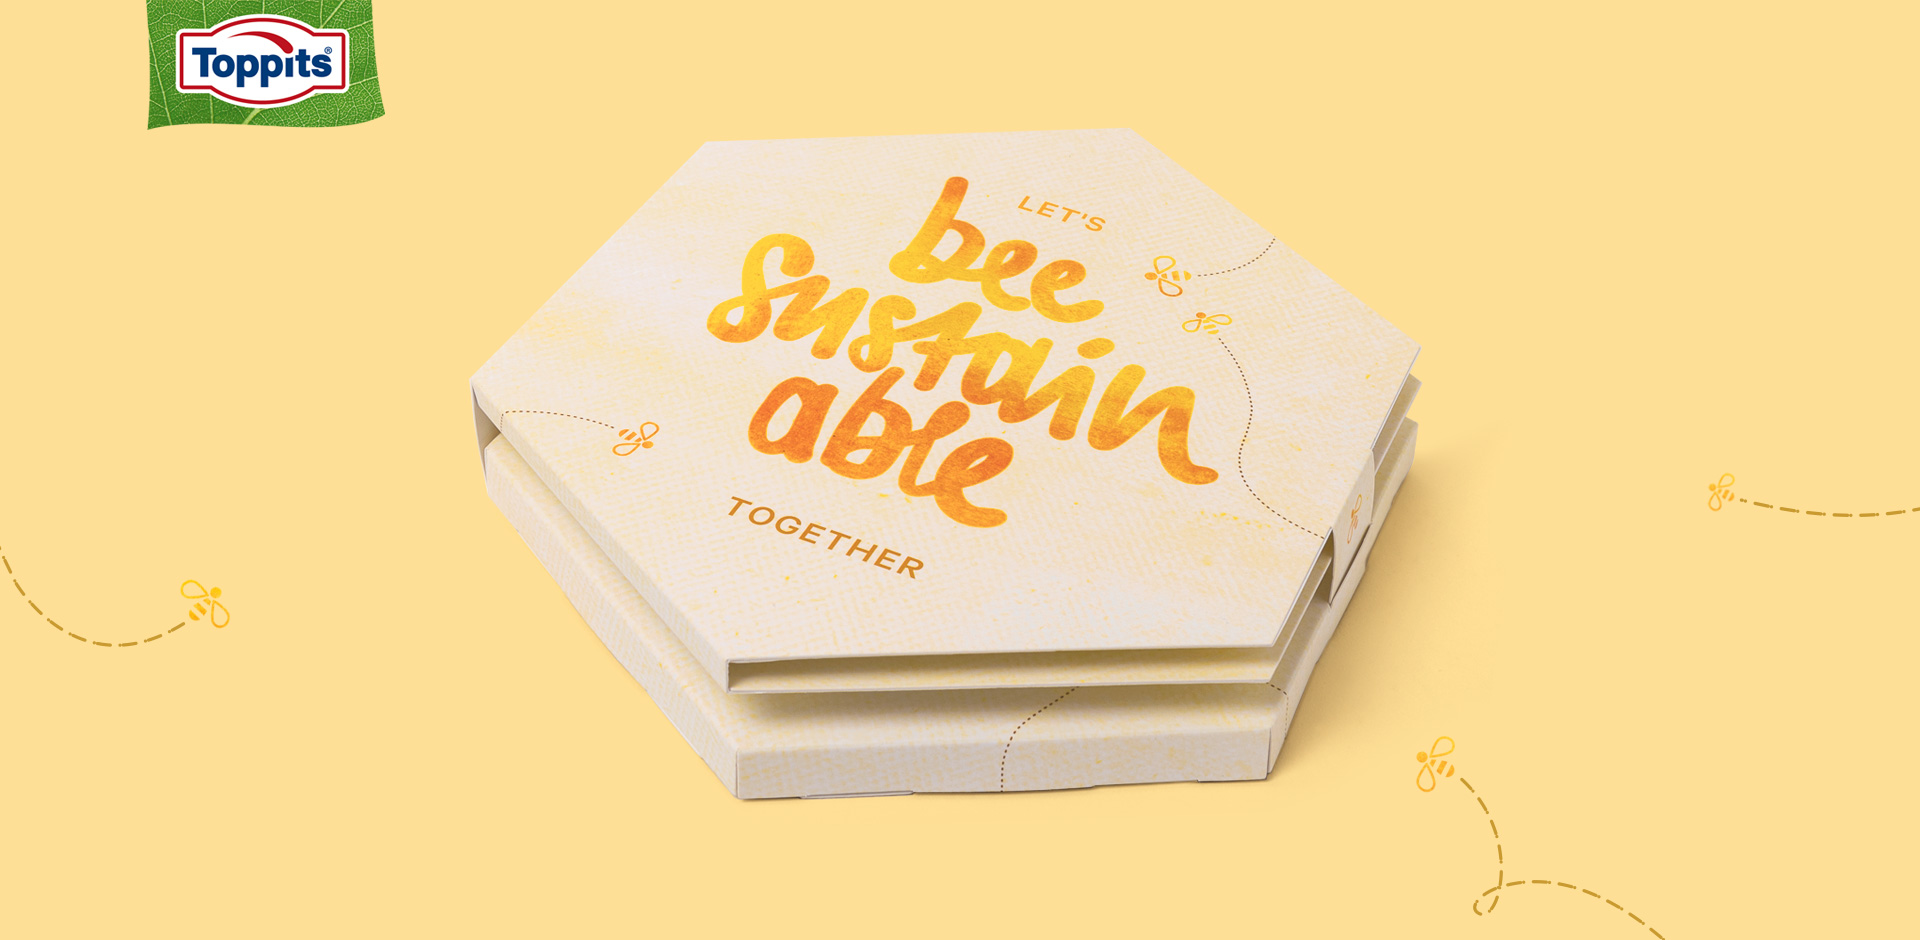 Toppits Beeswax Wraps Wabenbox